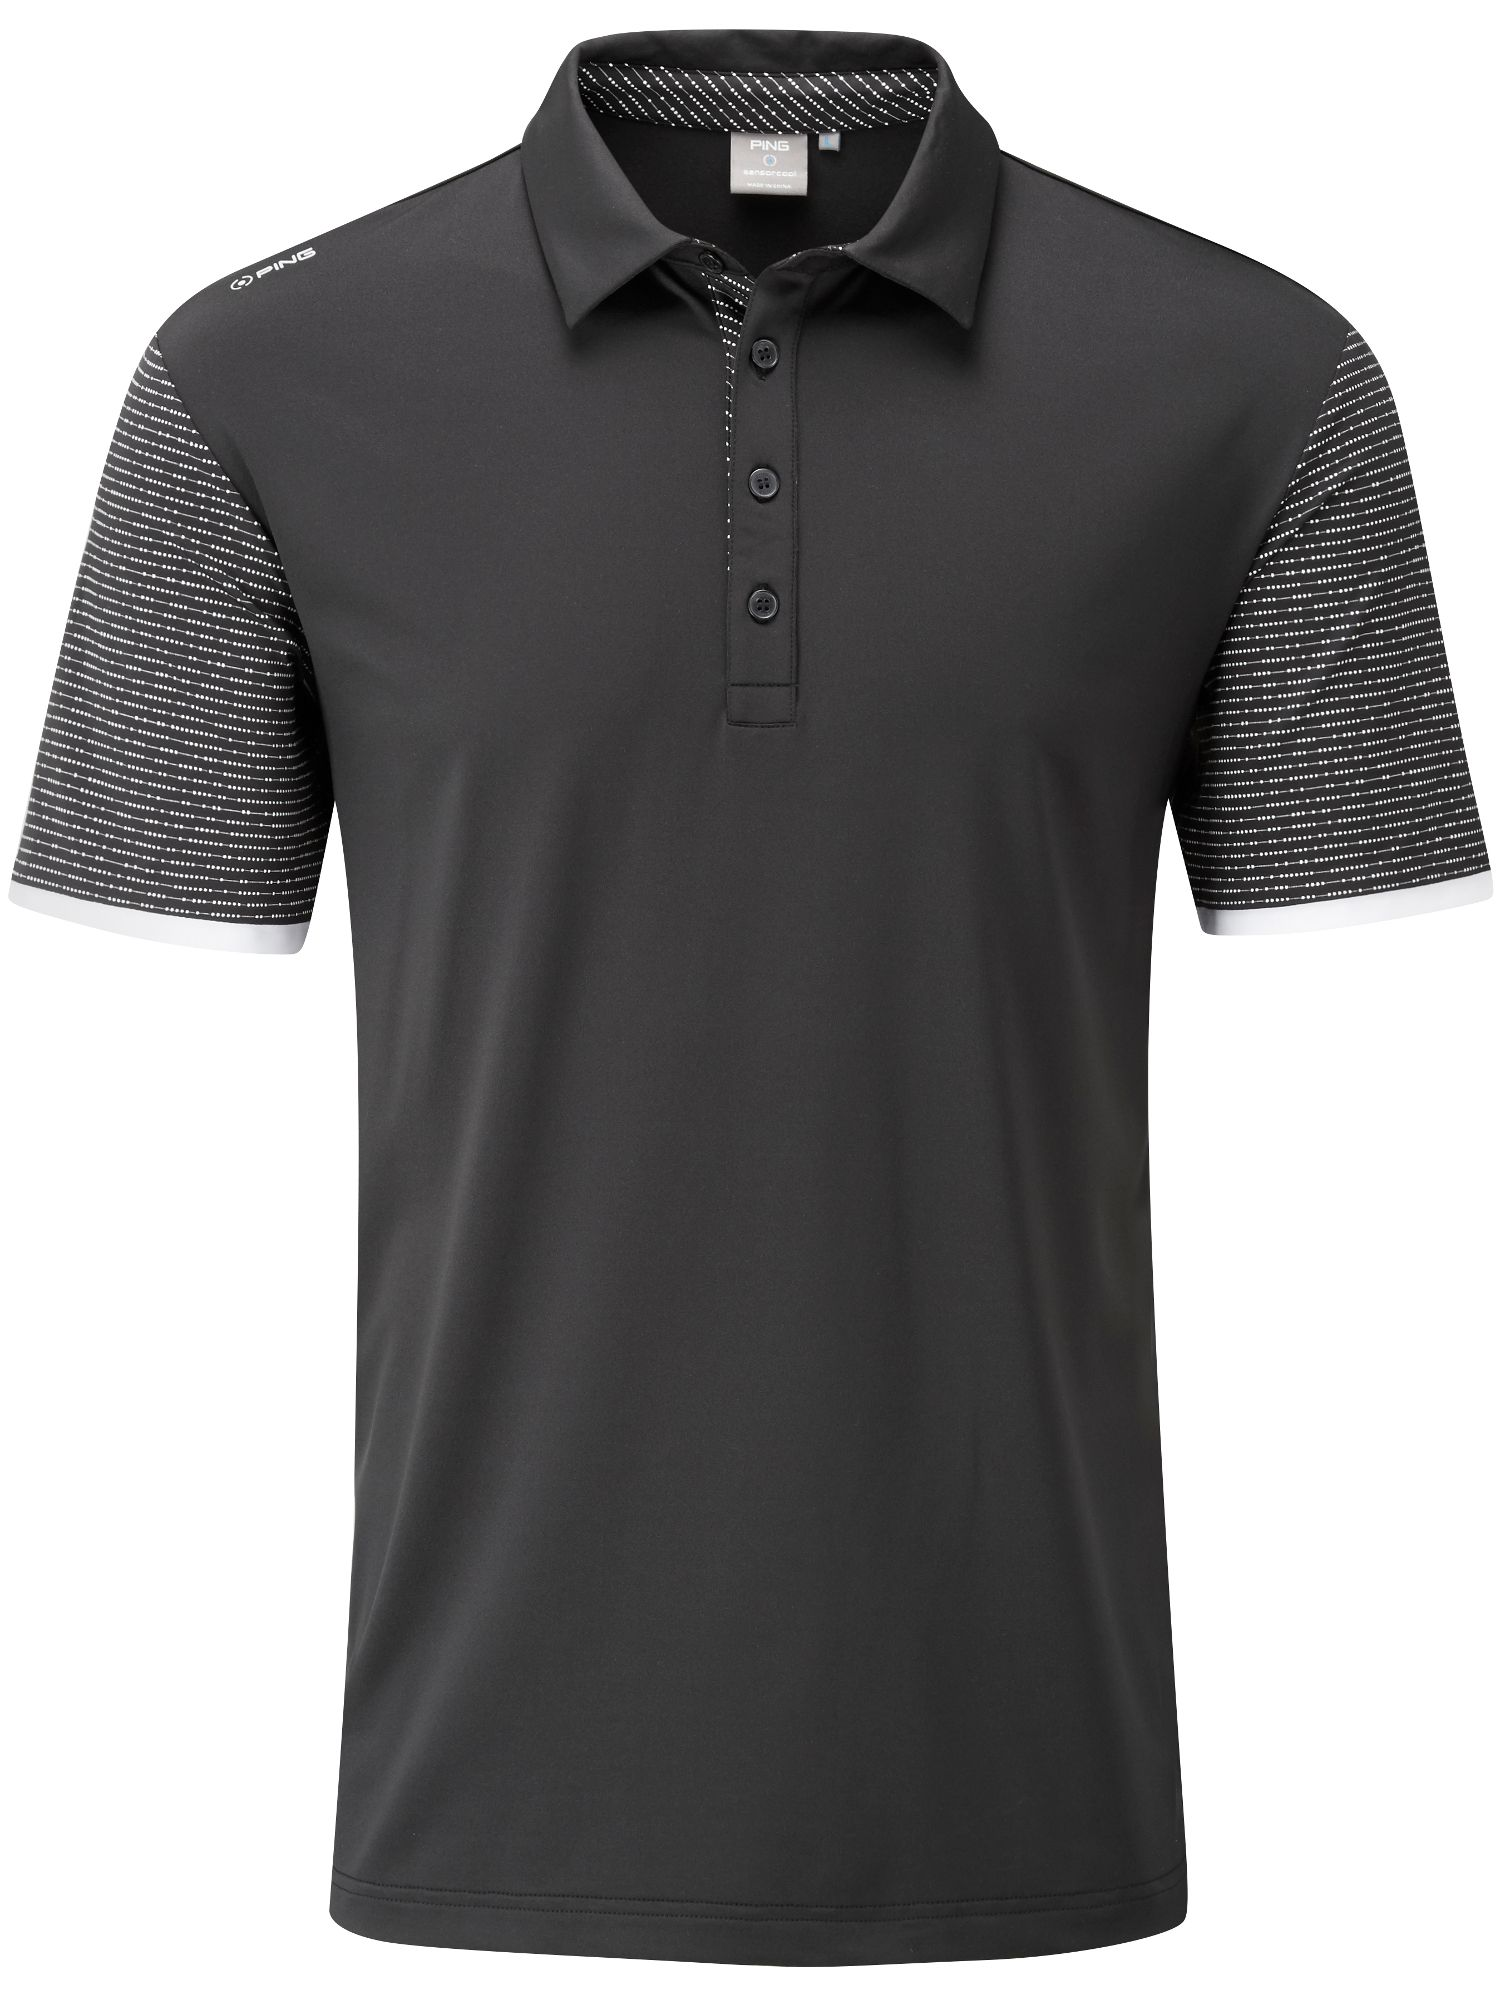 Men's Ping Sotto Polo, Black